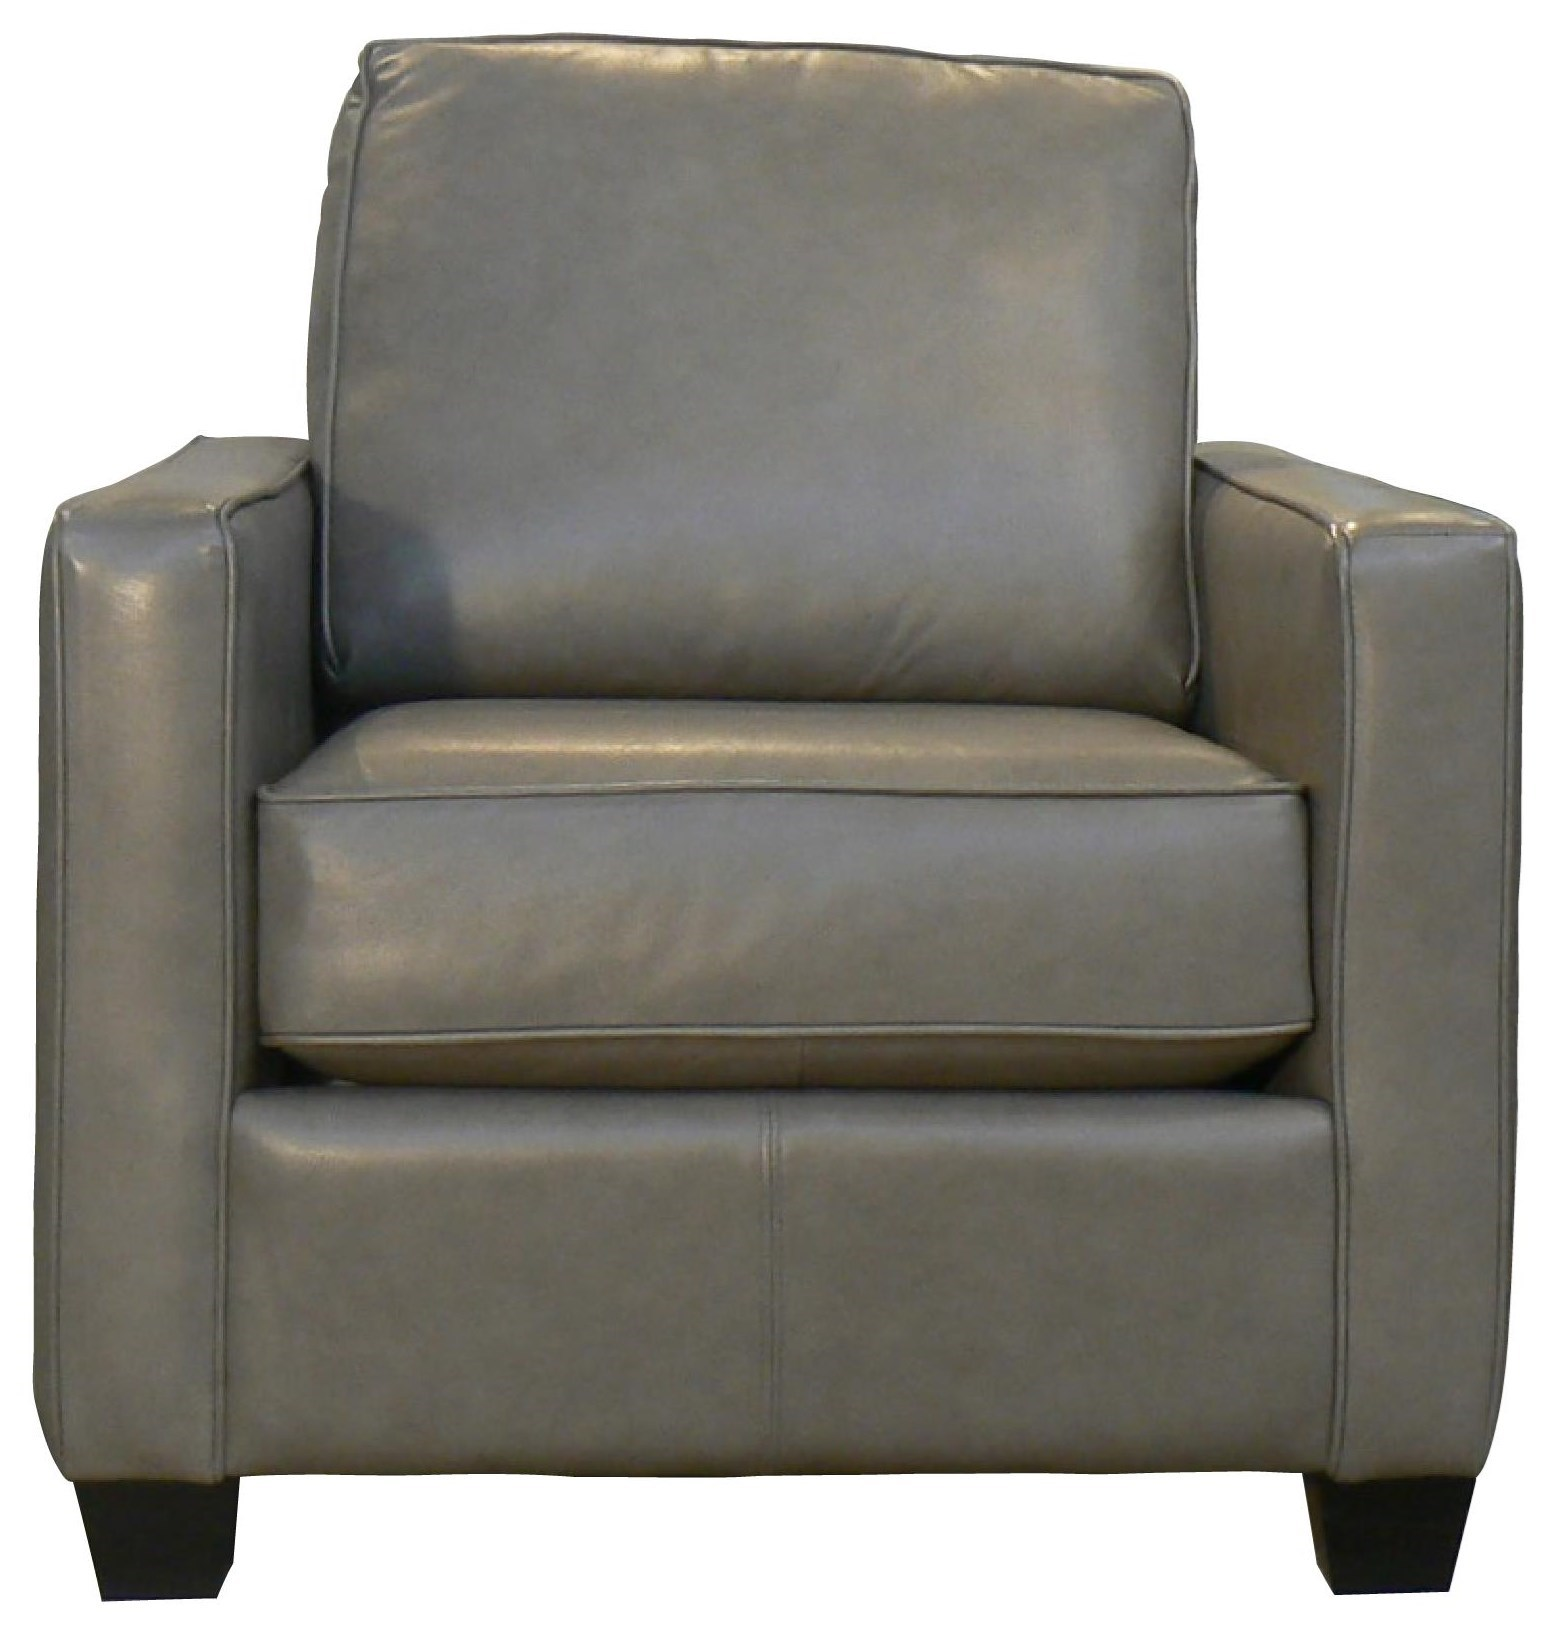 Taelor Designs Lara Contemporary Leather Chair With Track Arms Bennett S Furniture And Mattresses Upholstered Chairs